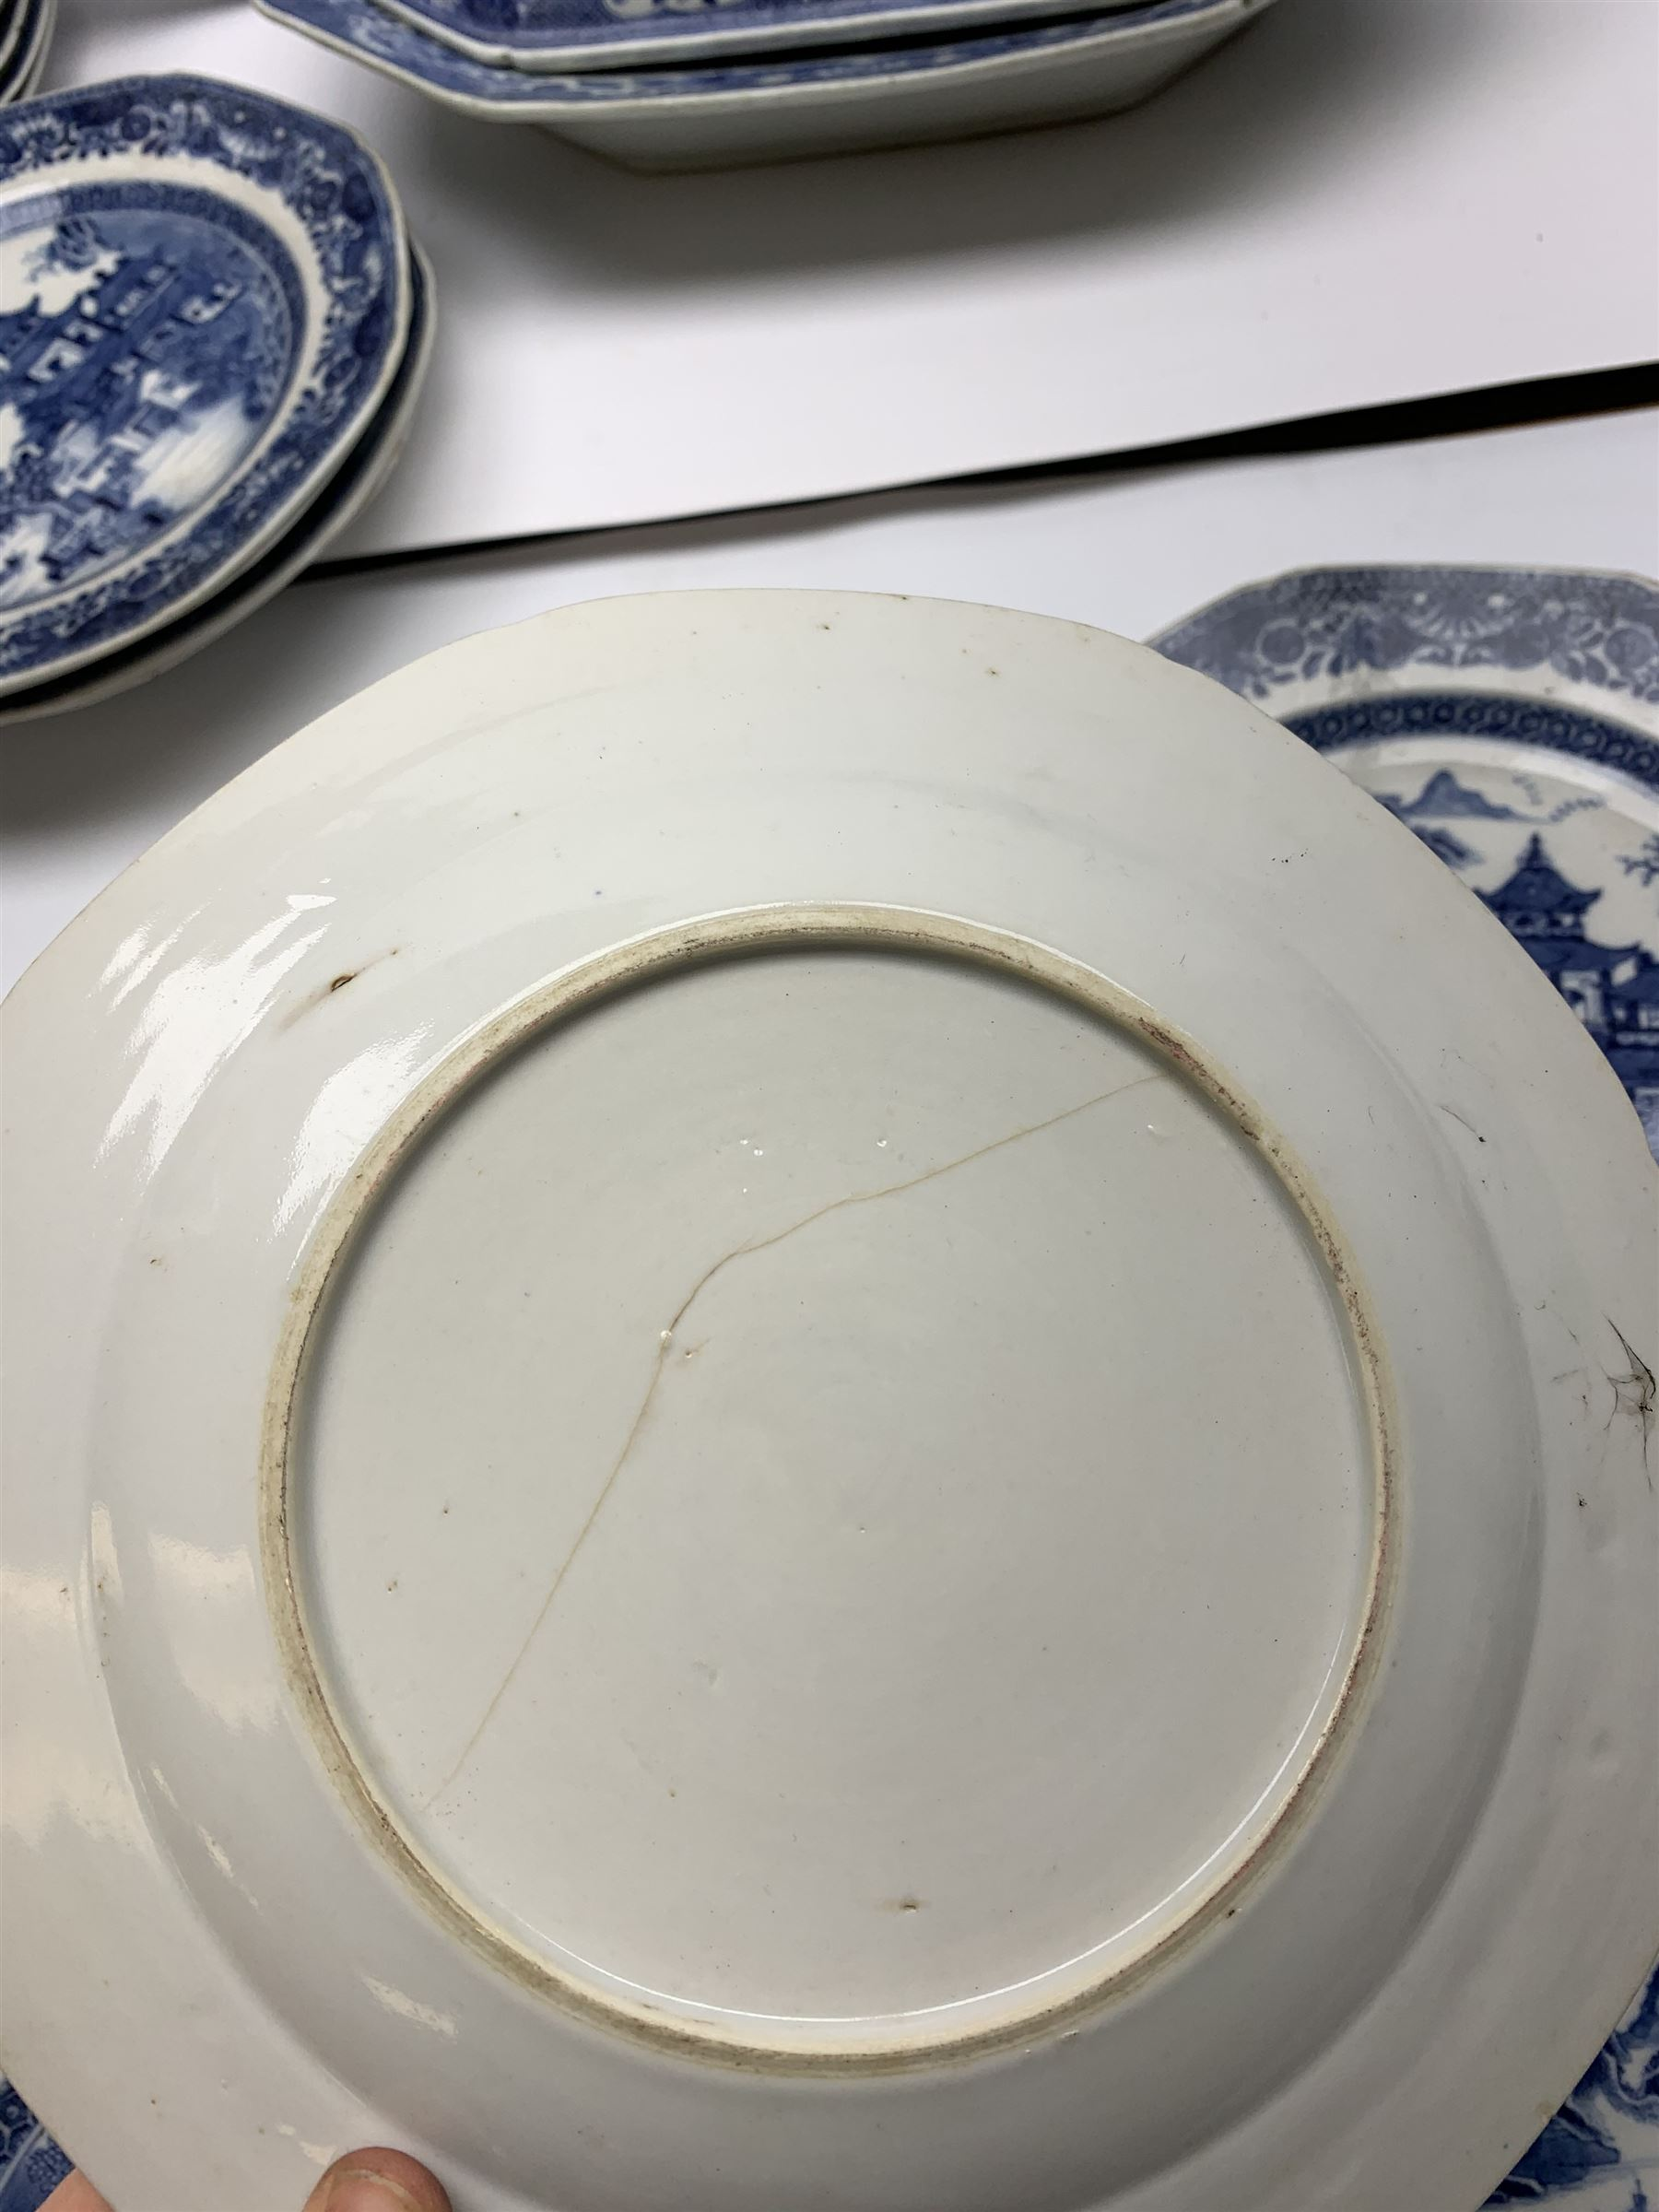 Late 18th/early 19th century Chinese export blue and white forty seven piece part dinner service - Image 18 of 20